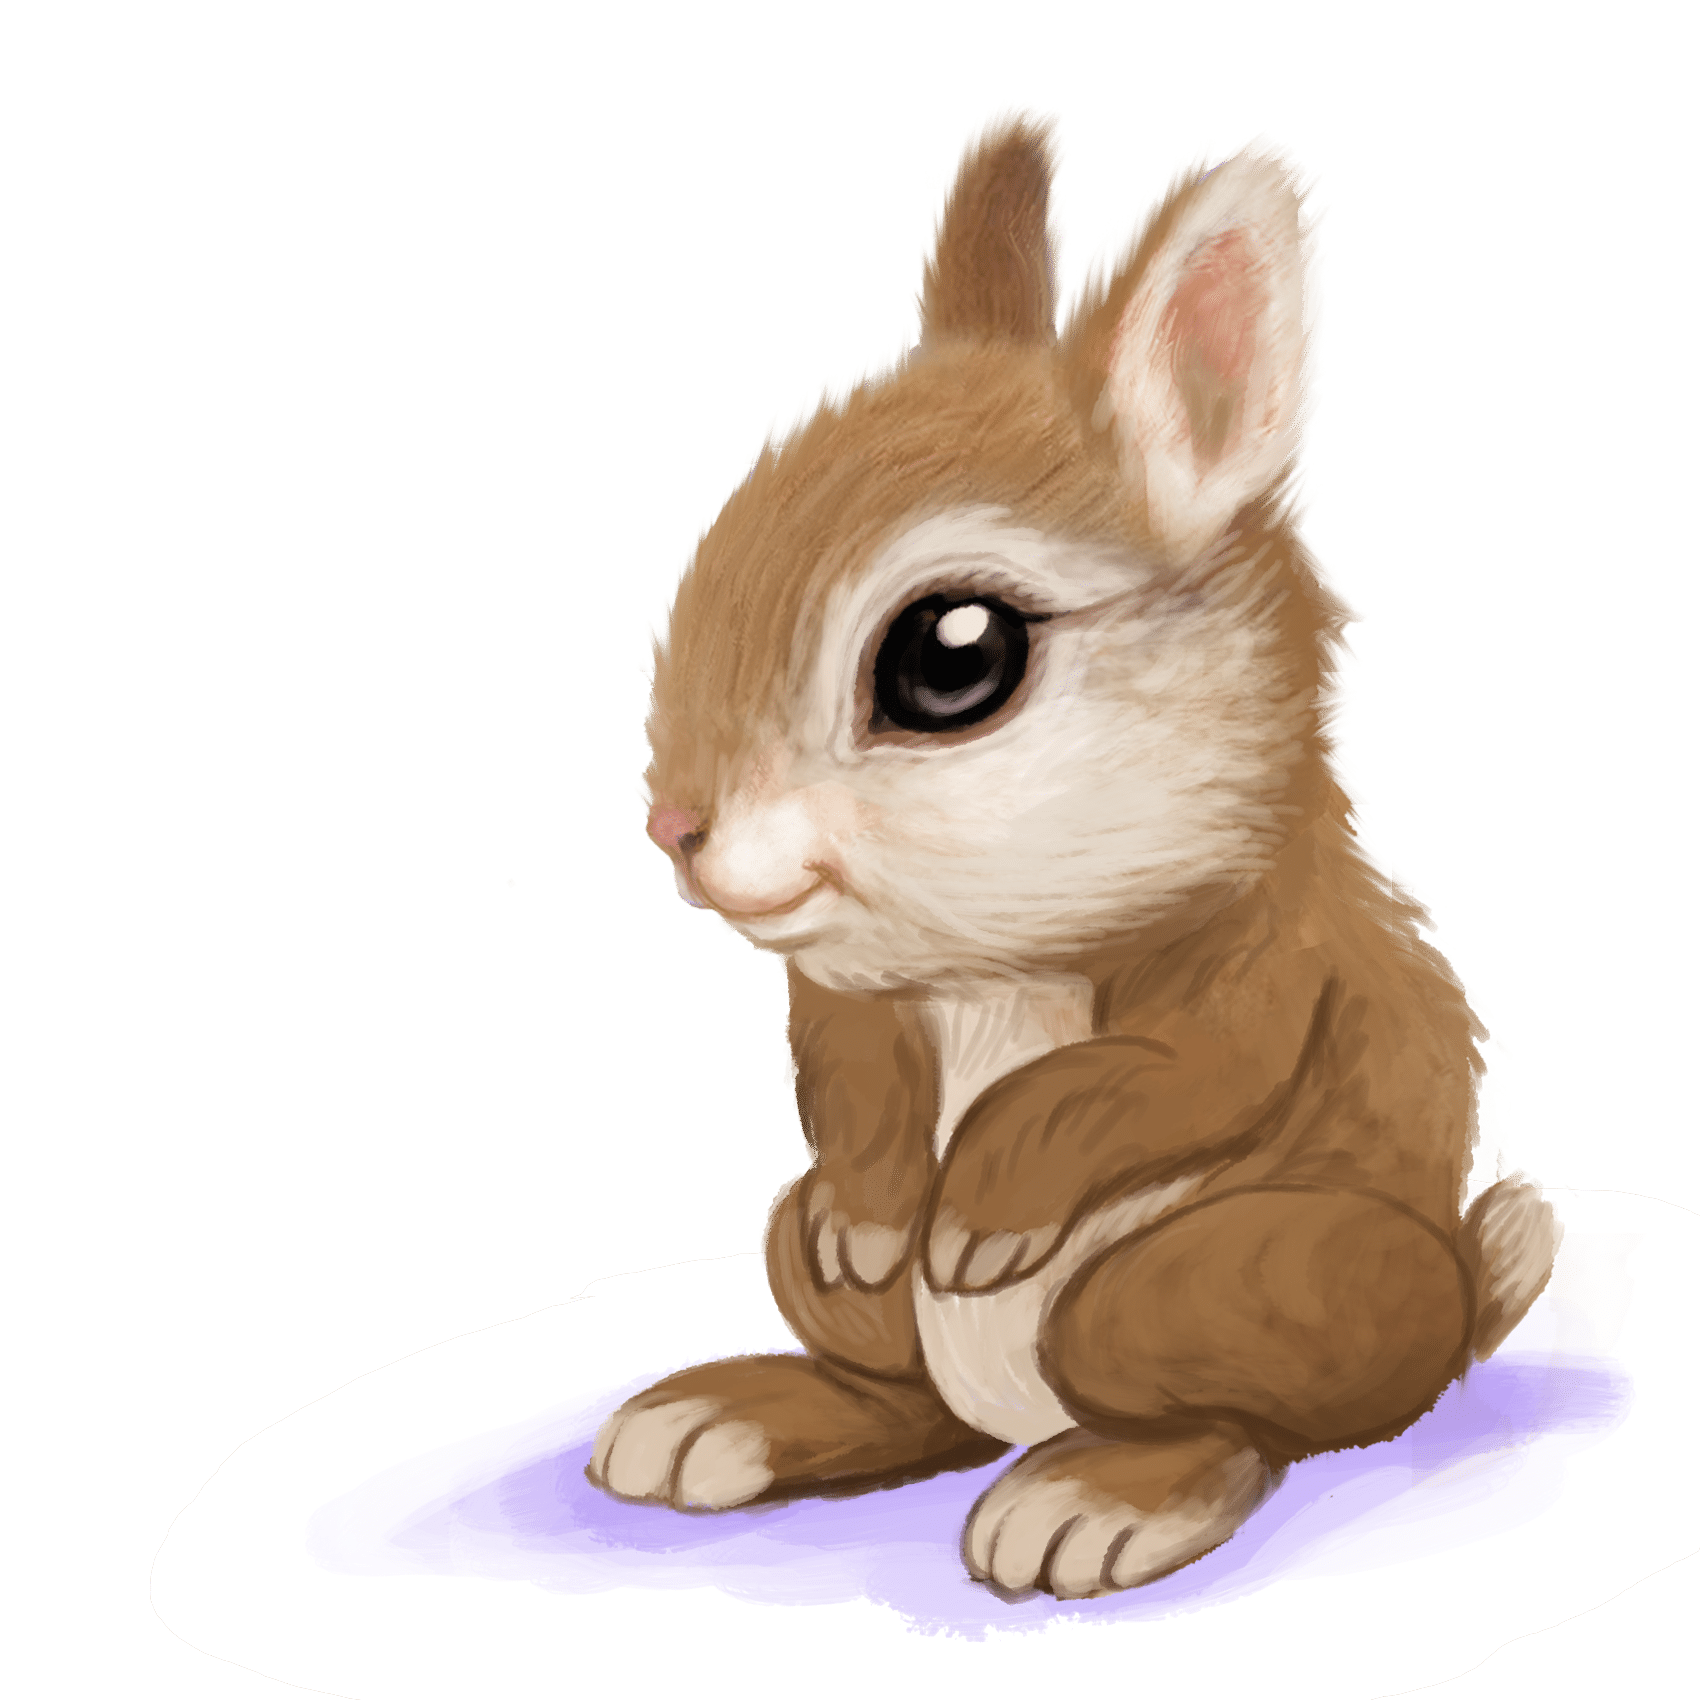 Larry the Bunny